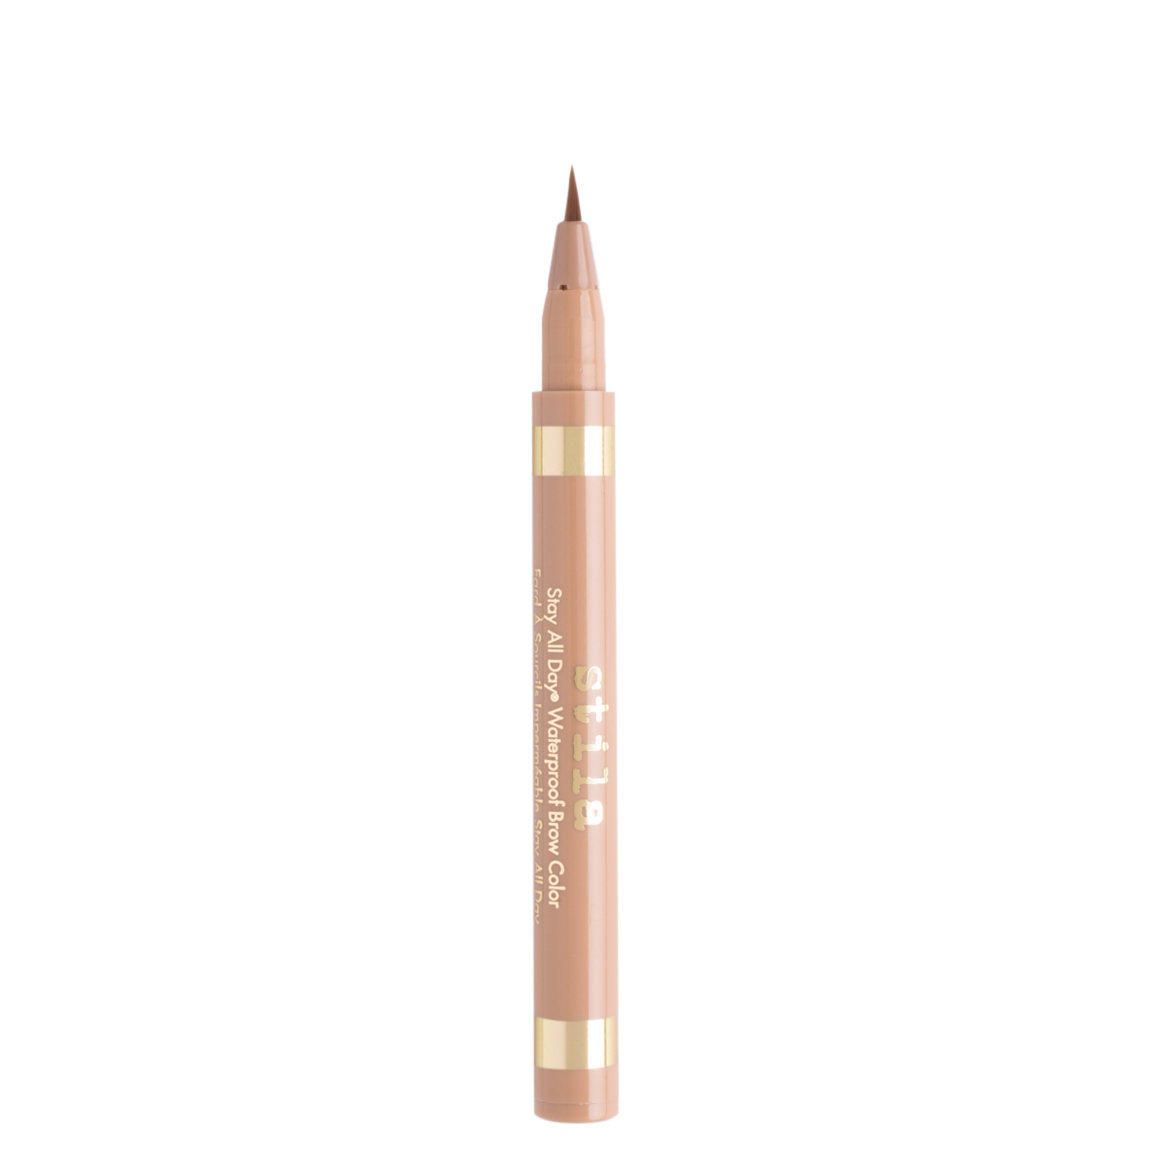 Stila Stay All Day Waterproof Brow Color Light Ash